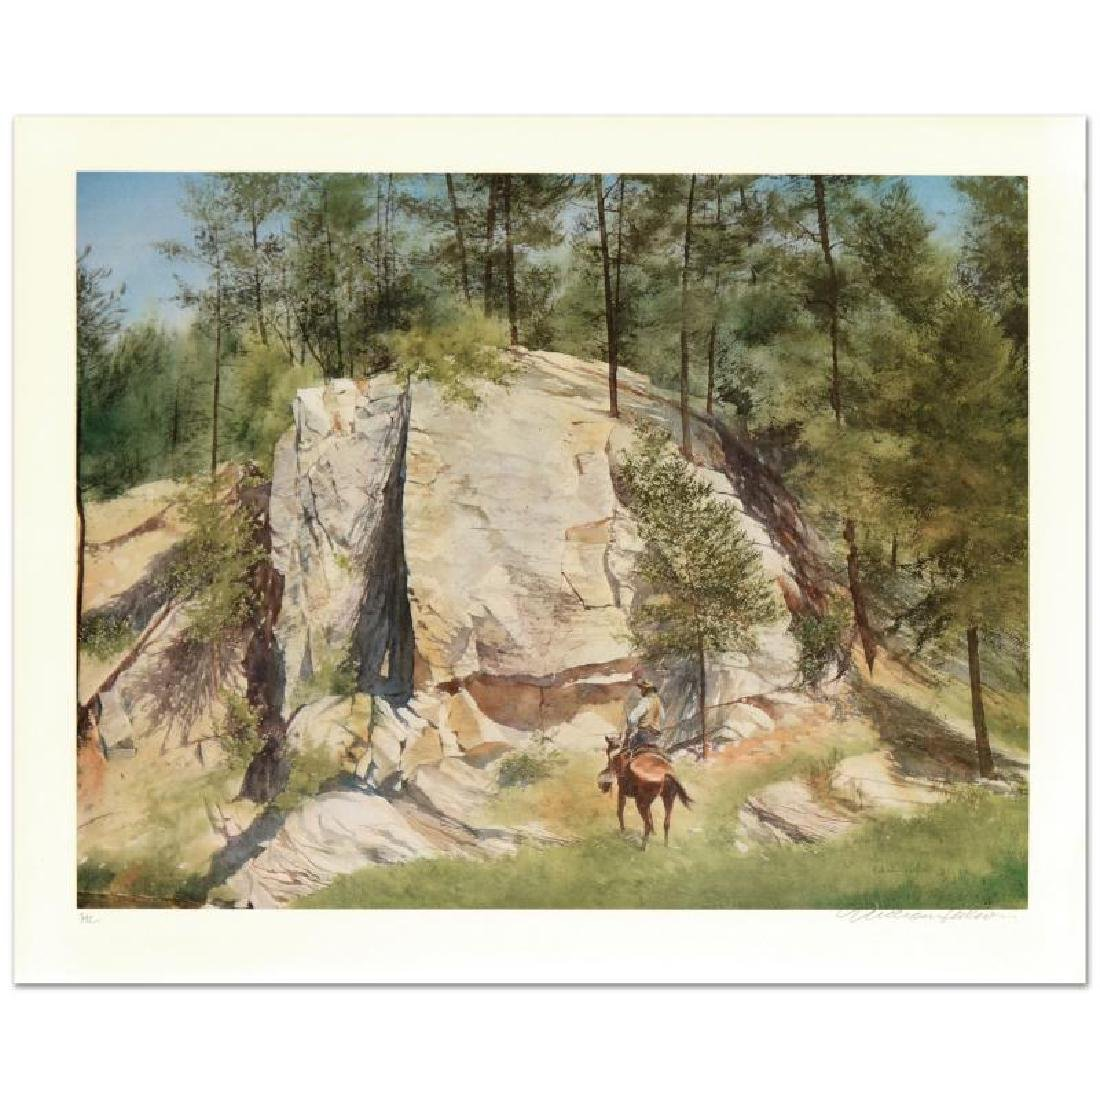 Cleft Rock by Nelson, William